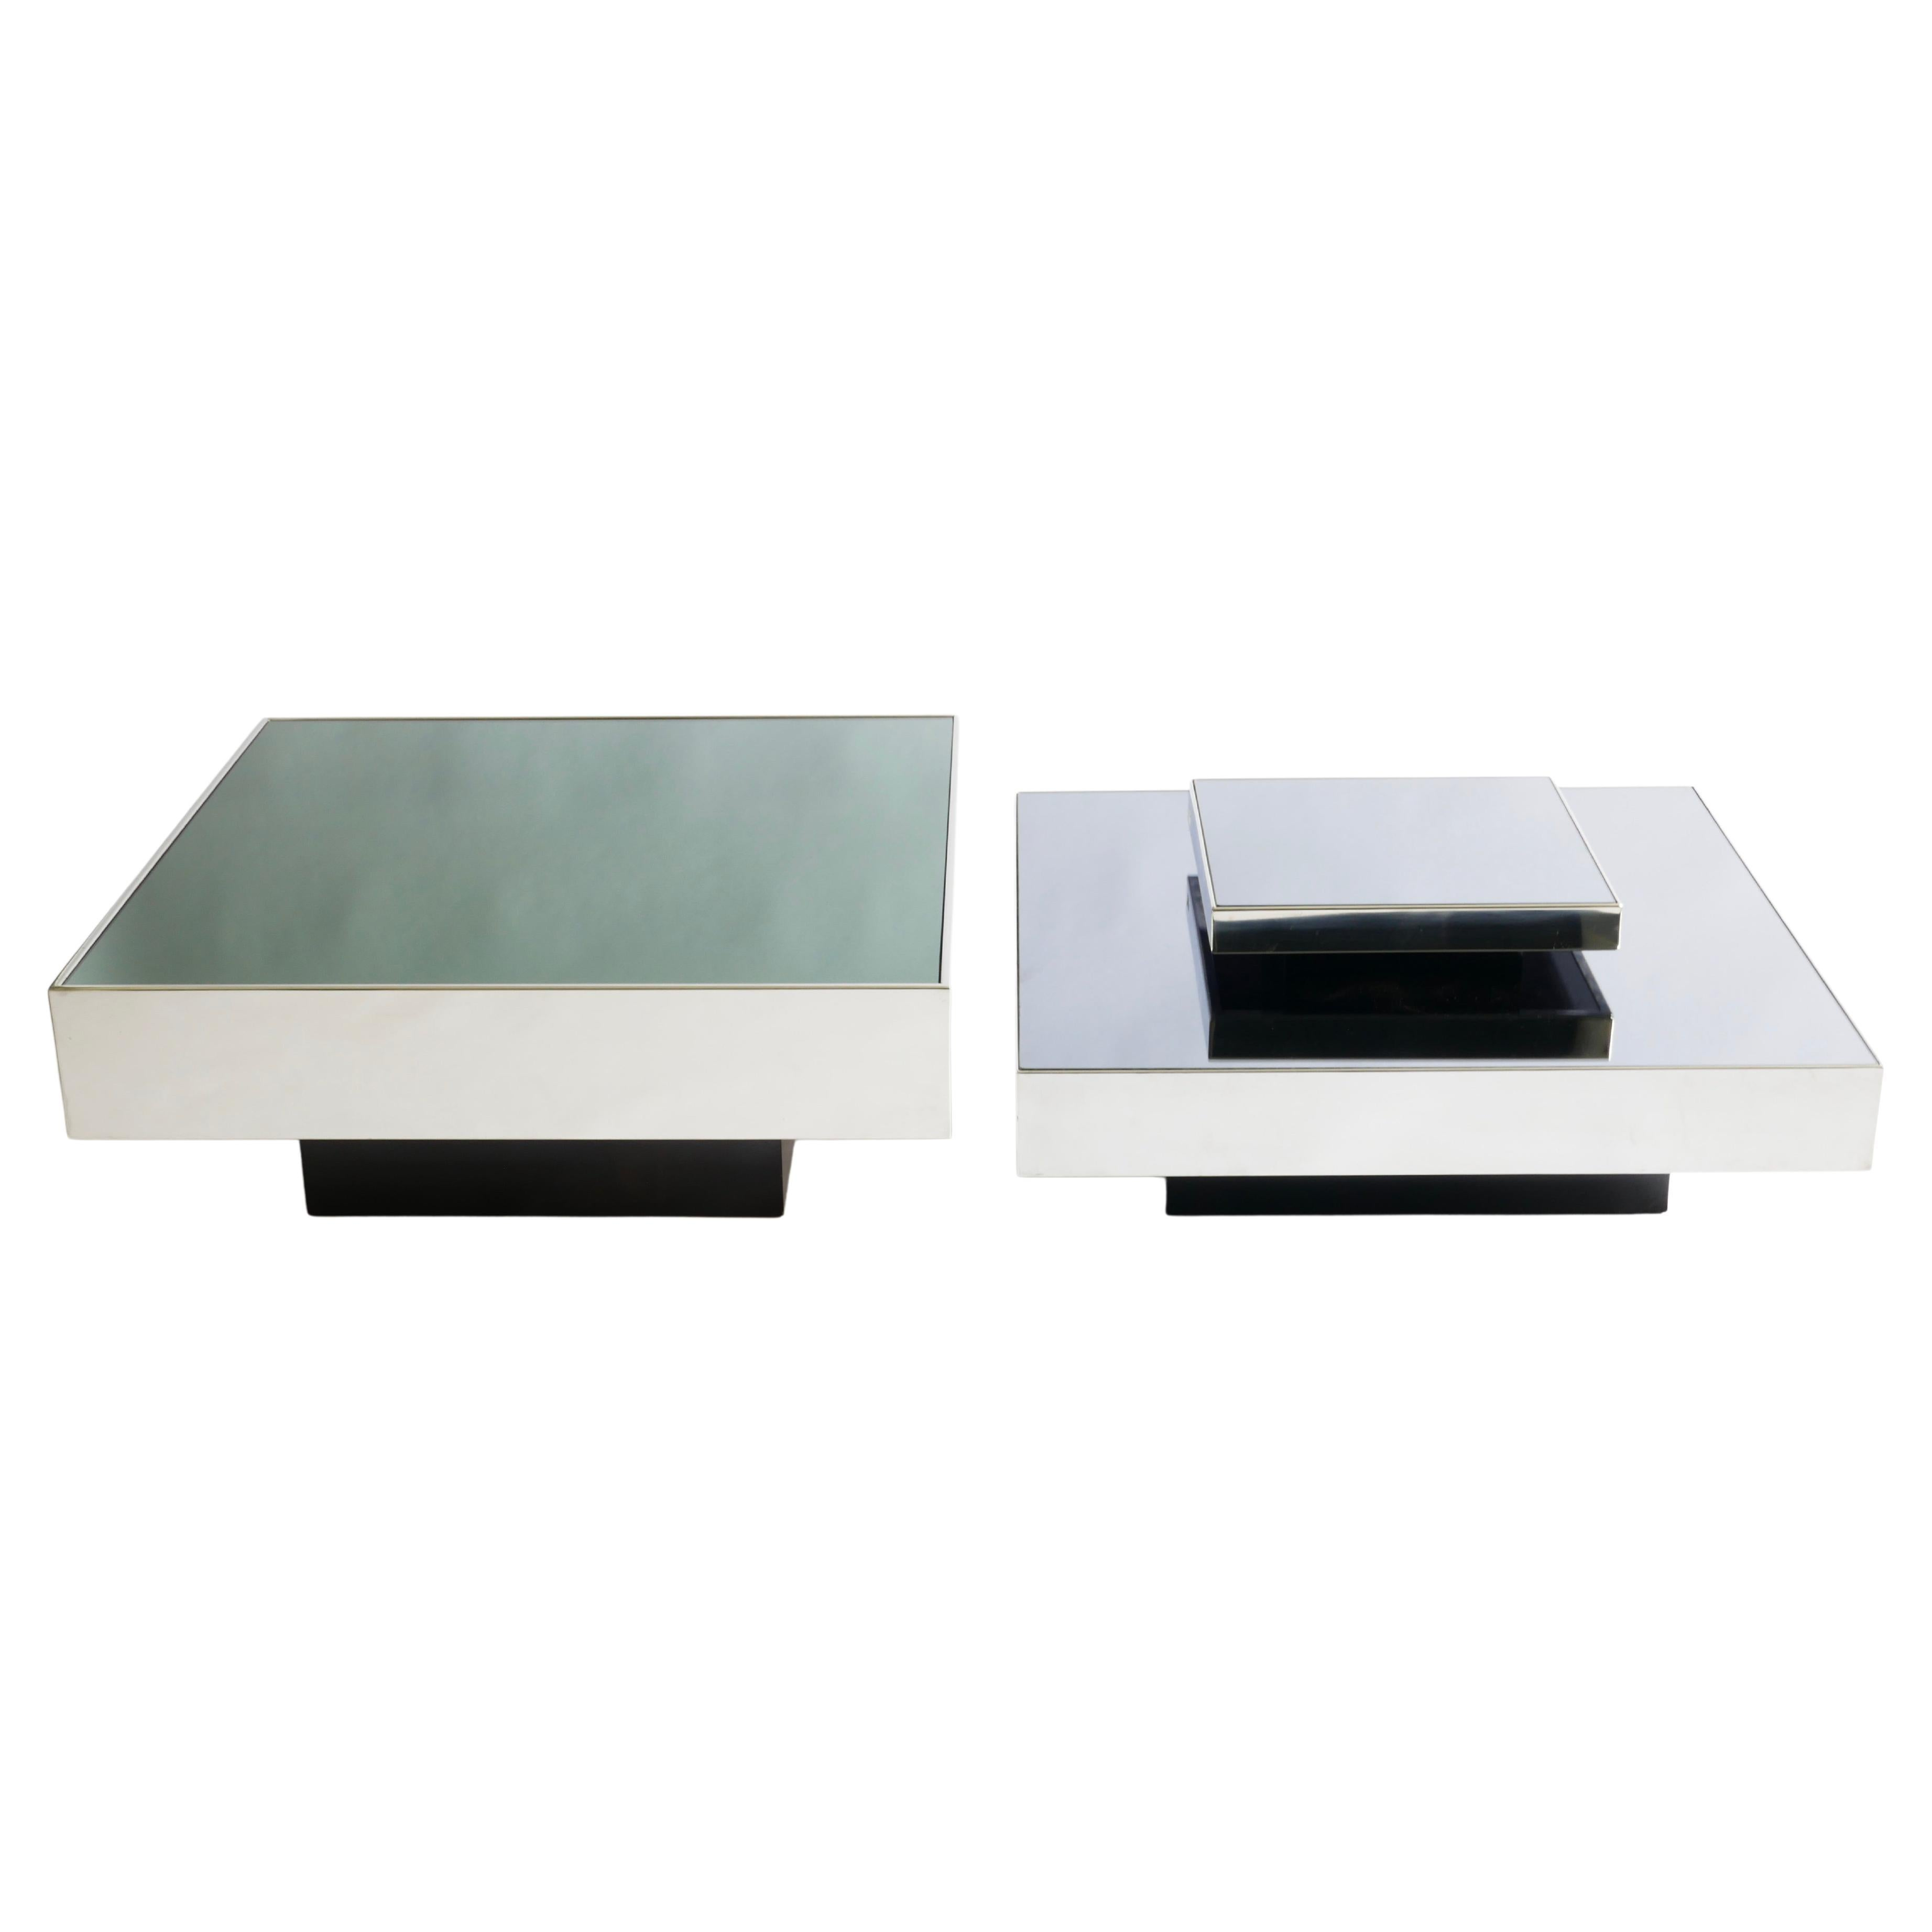 Set of 2 Inox and Mirrored Coffee or Low Table by Ausenda, Italy 1970